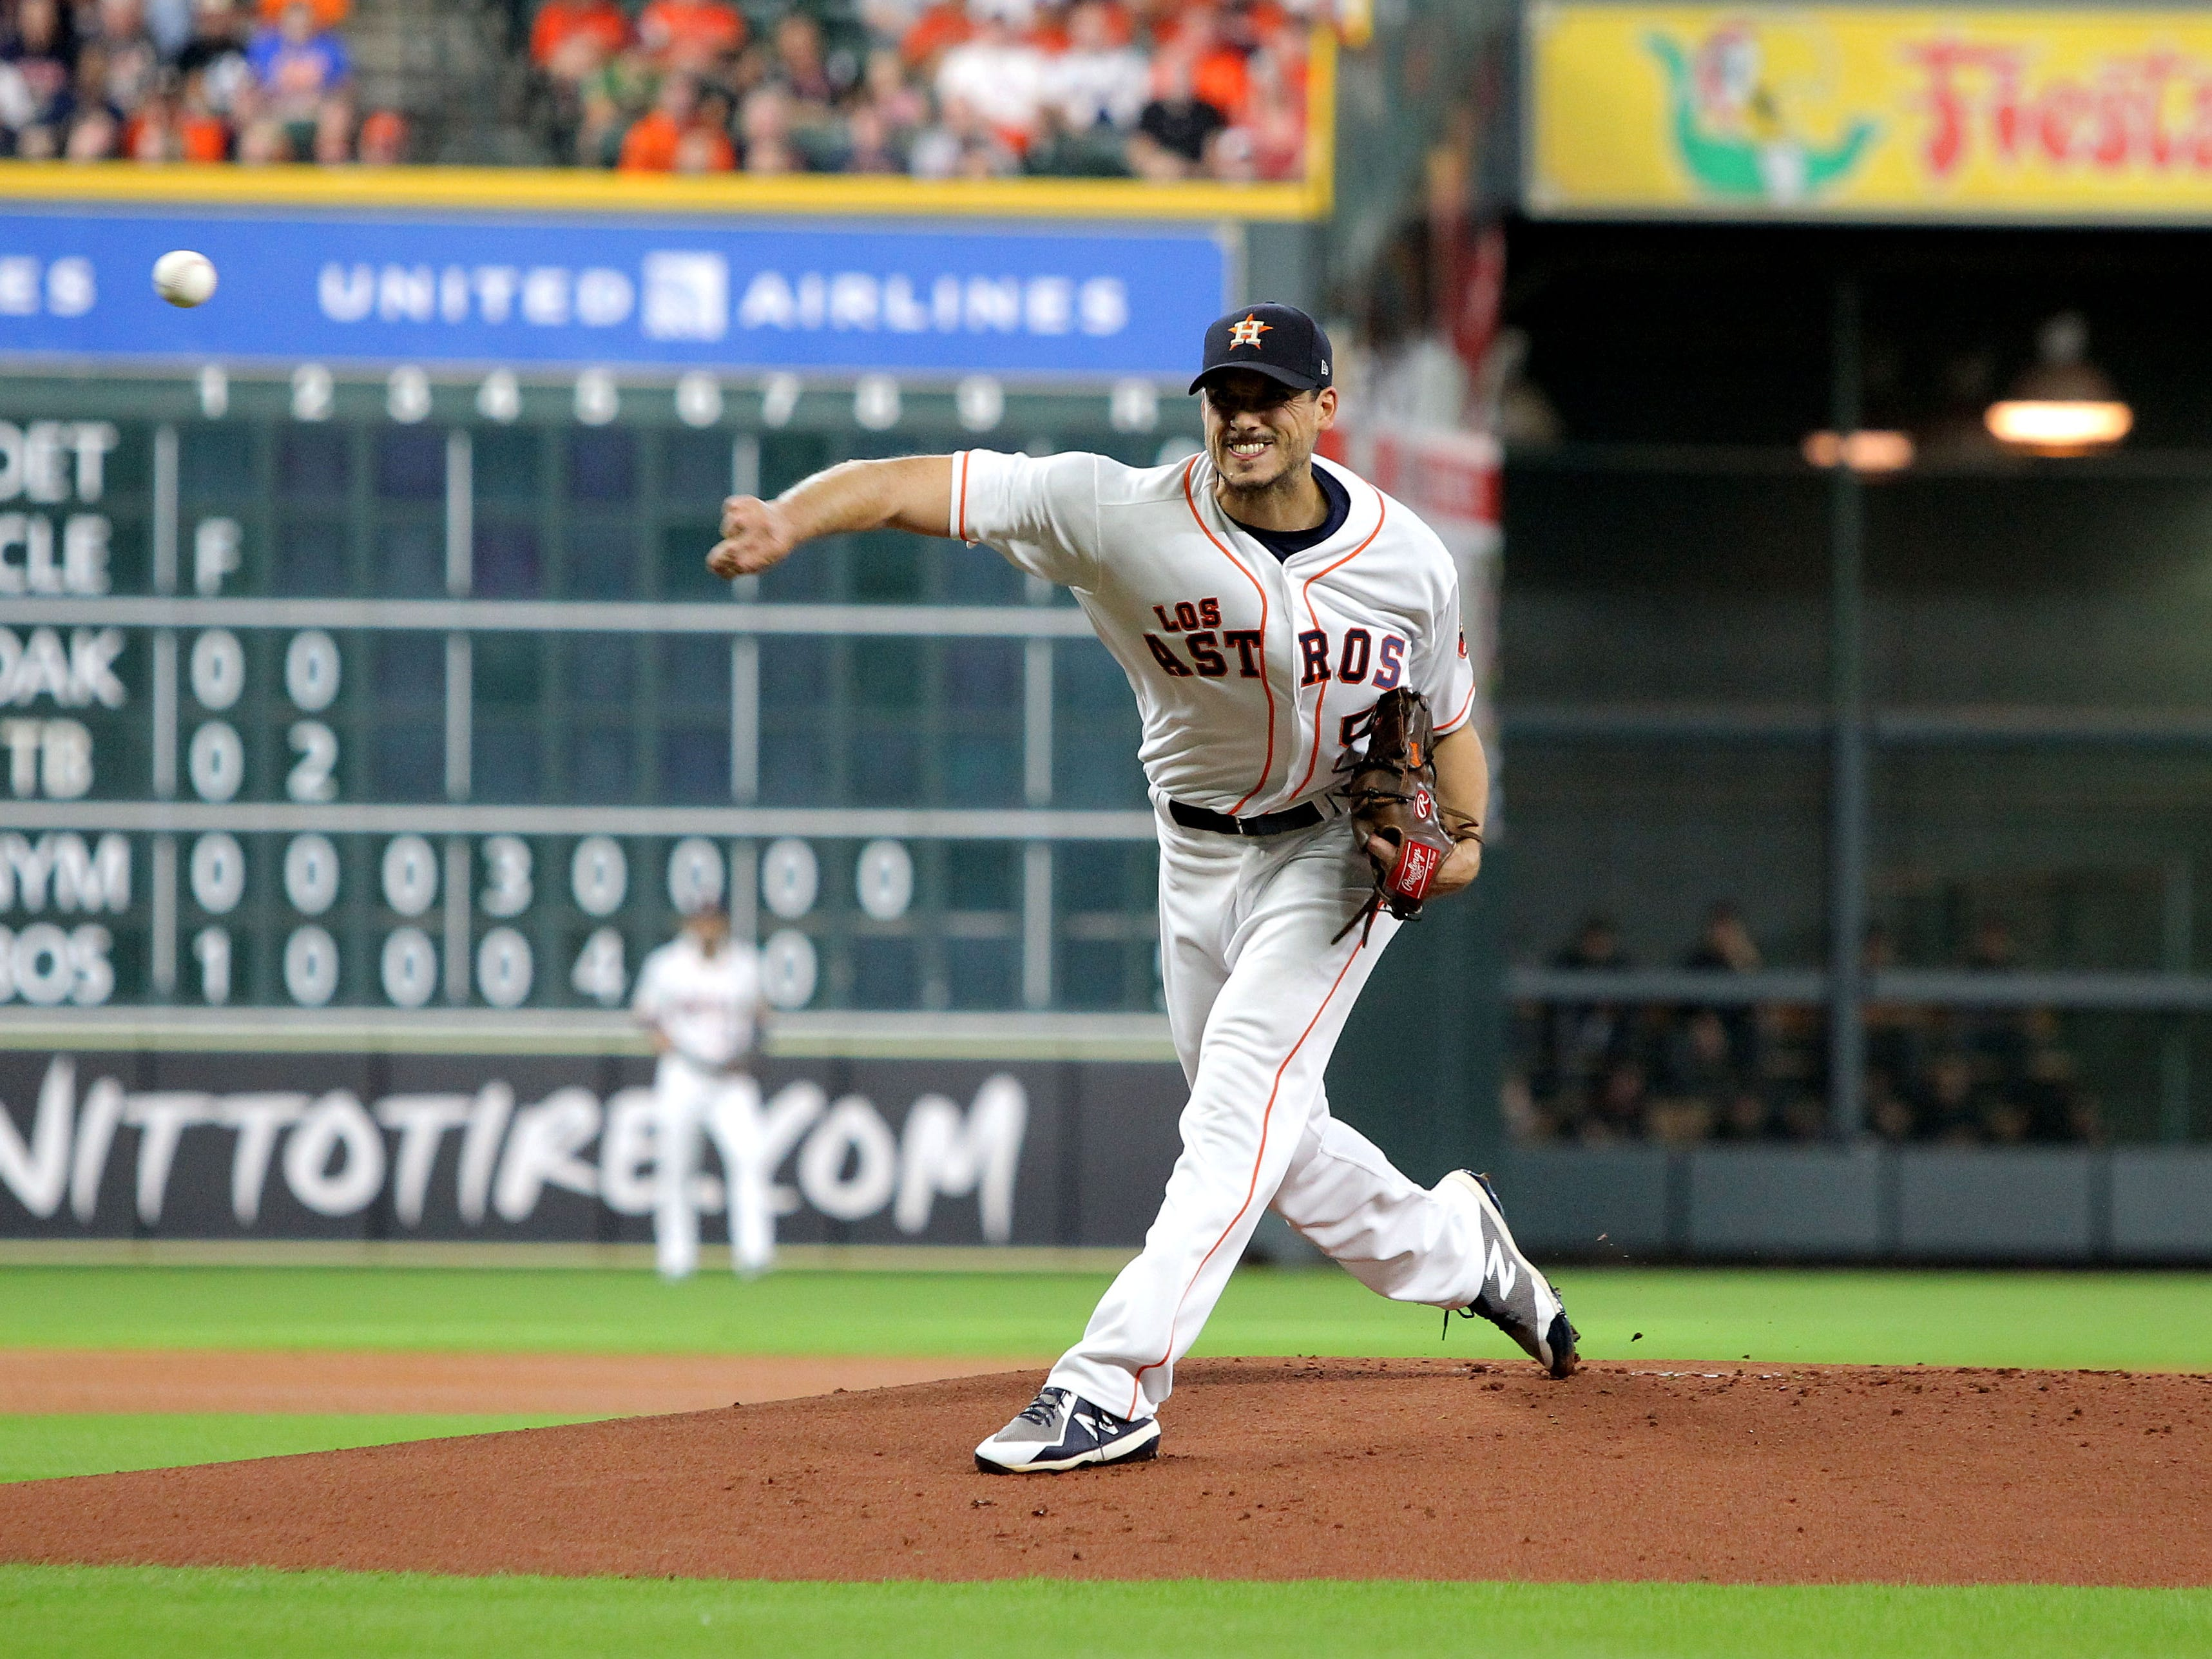 Sep 15, 2018; Houston, TX, USA; Houston Astros starting pitcher Charlie Morton (50) against the Arizona Diamondbacks during the first inning at Minute Maid Park. Mandatory Credit: Erik Williams-USA TODAY Sports